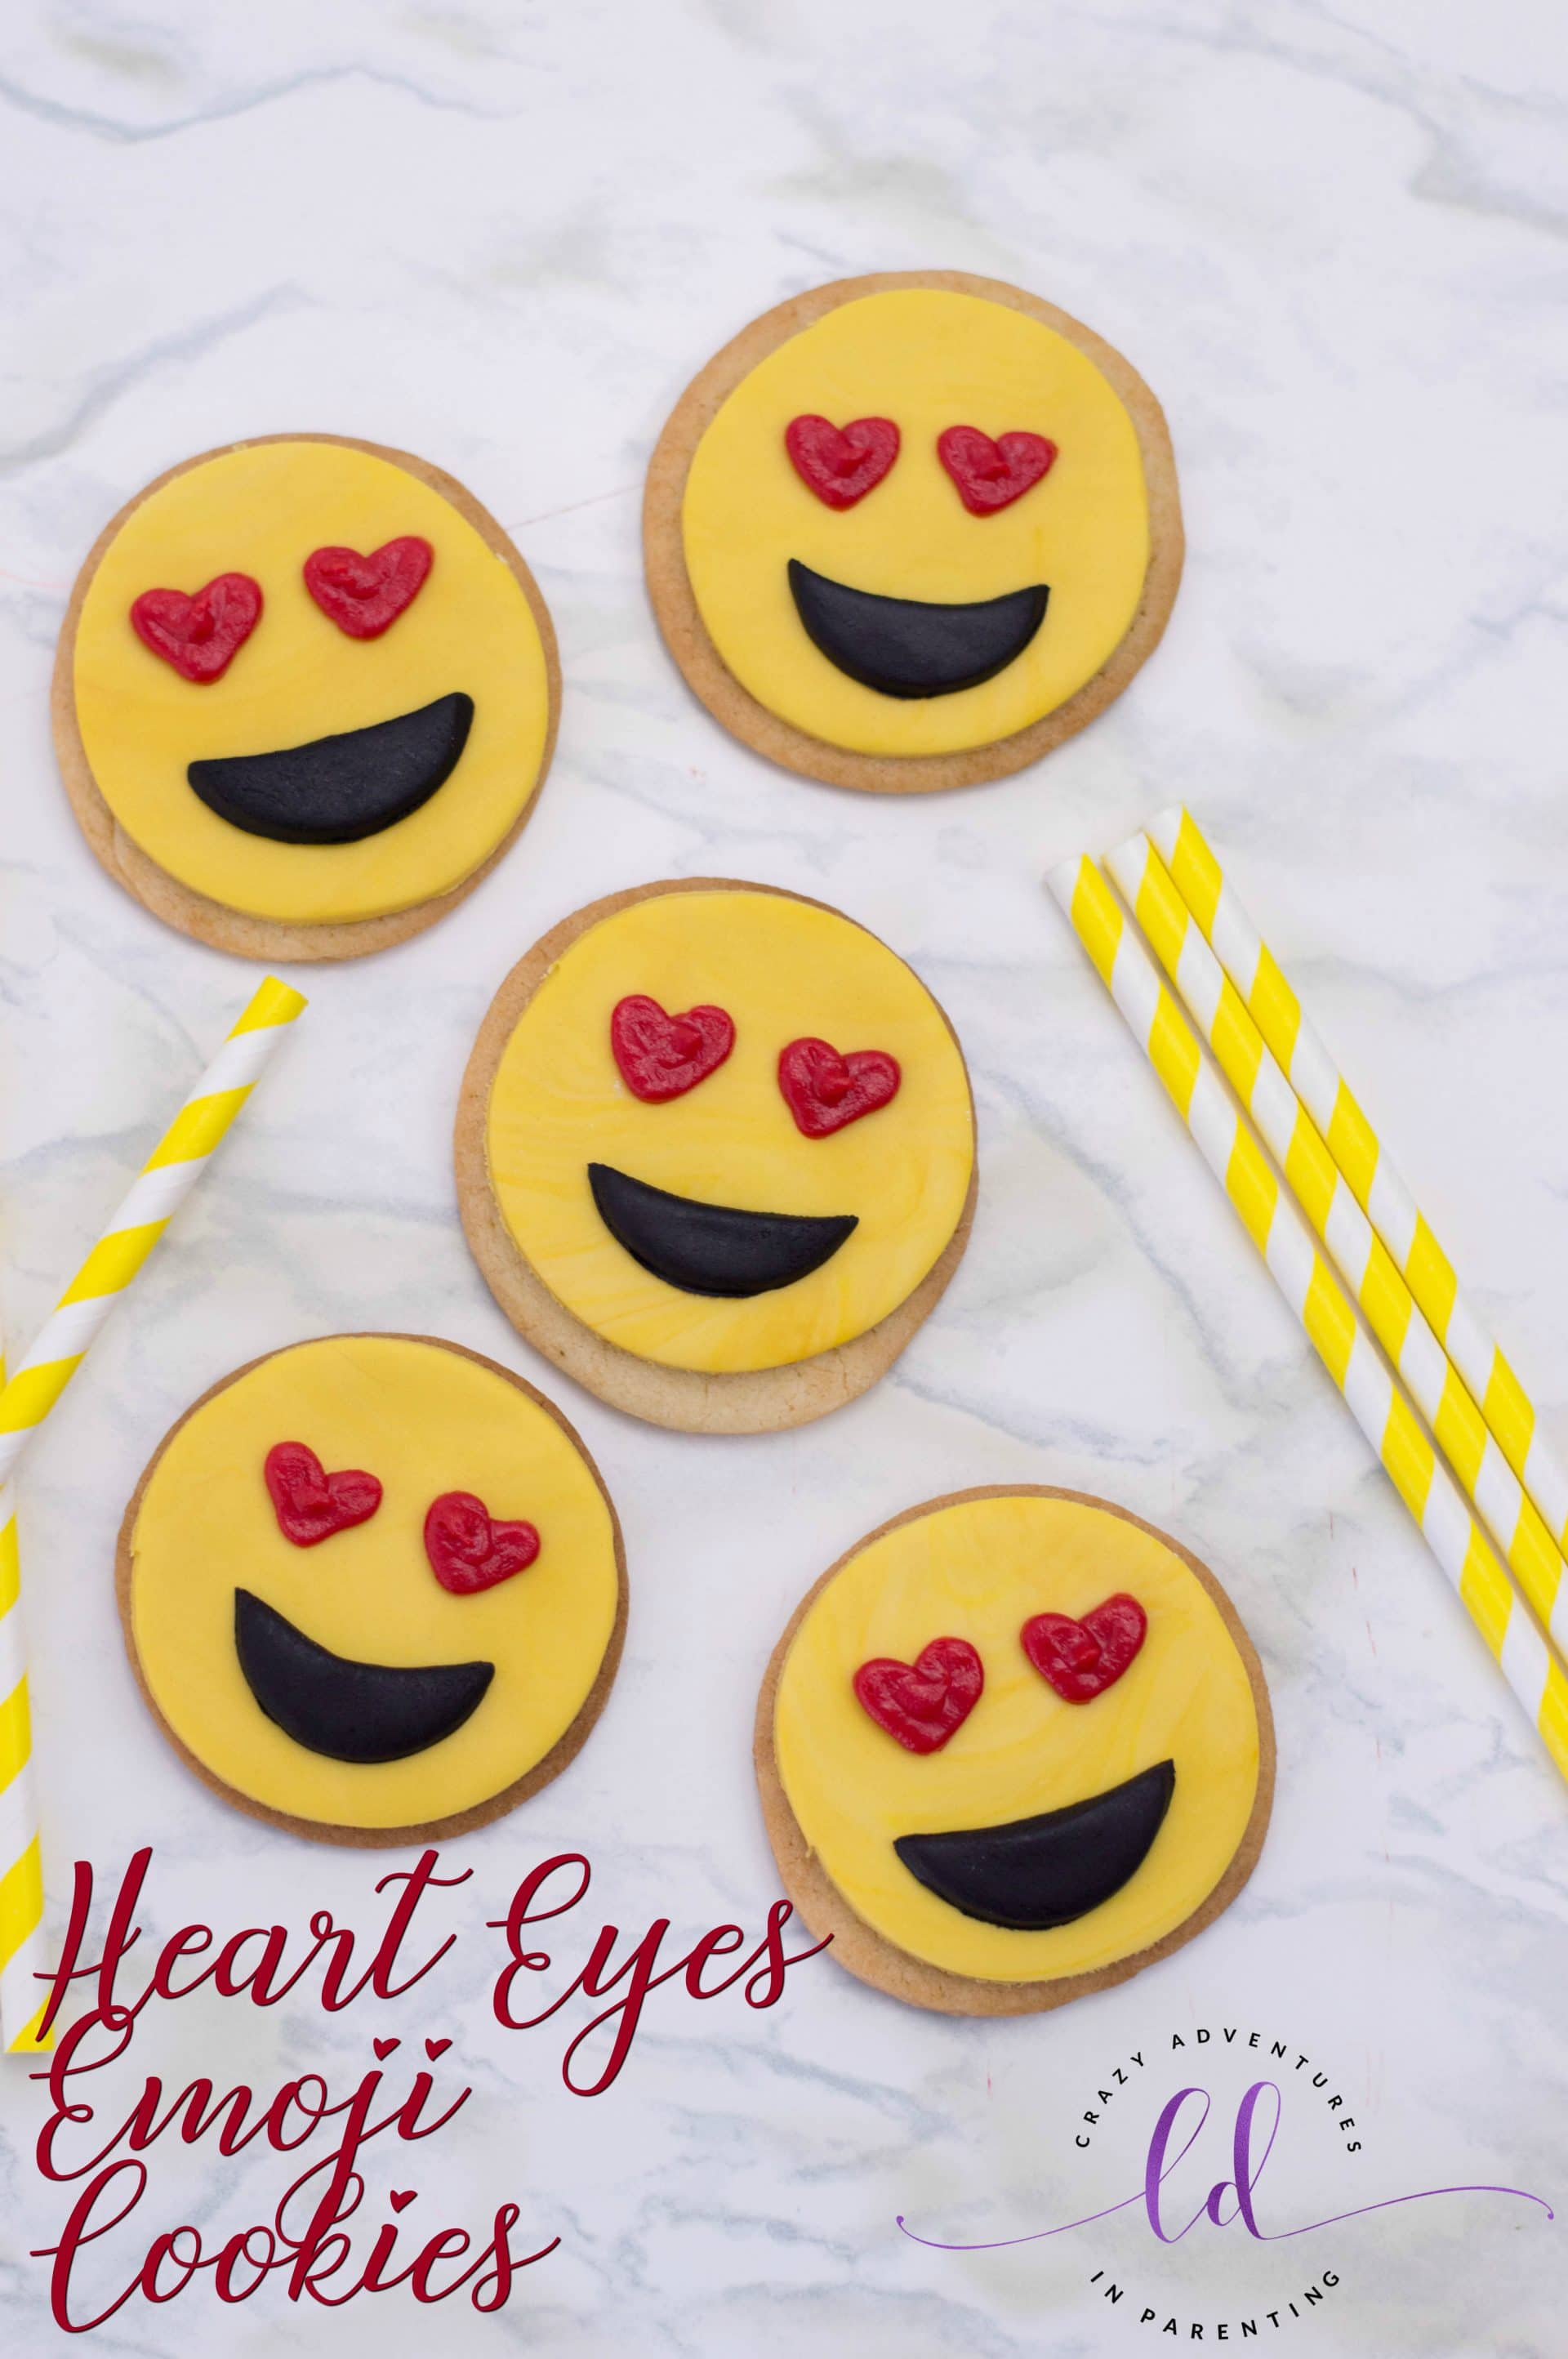 Heart Eyes Emoji Cookies